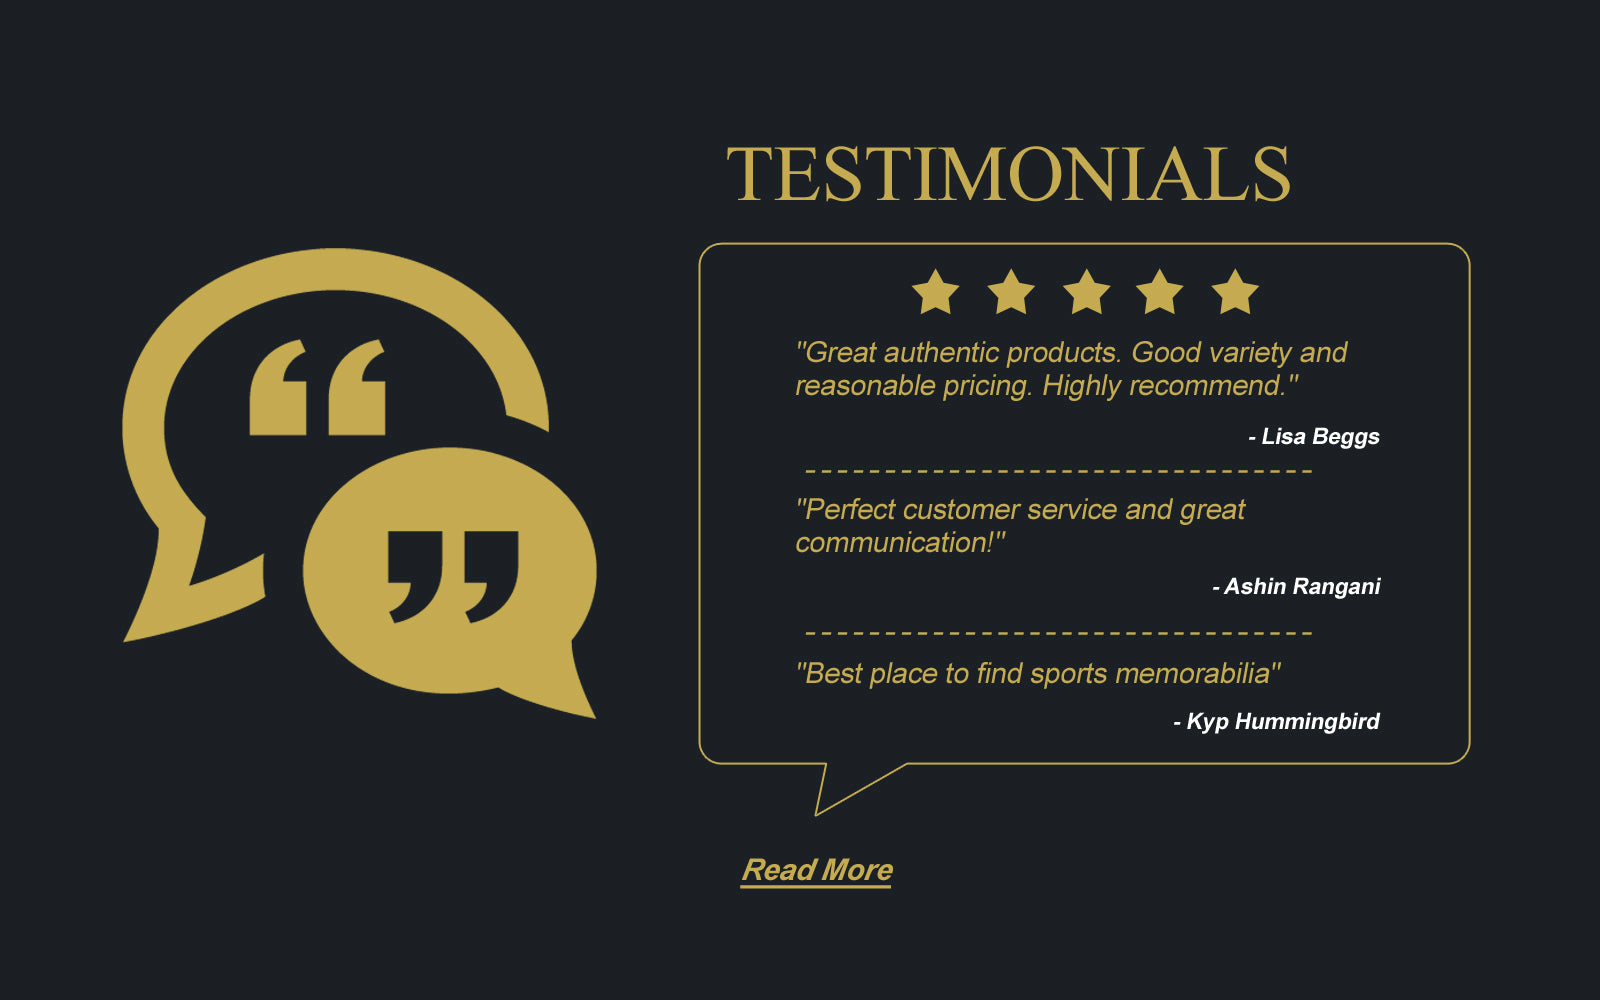 Powers Sports Memorabilia Reviews Testimonials